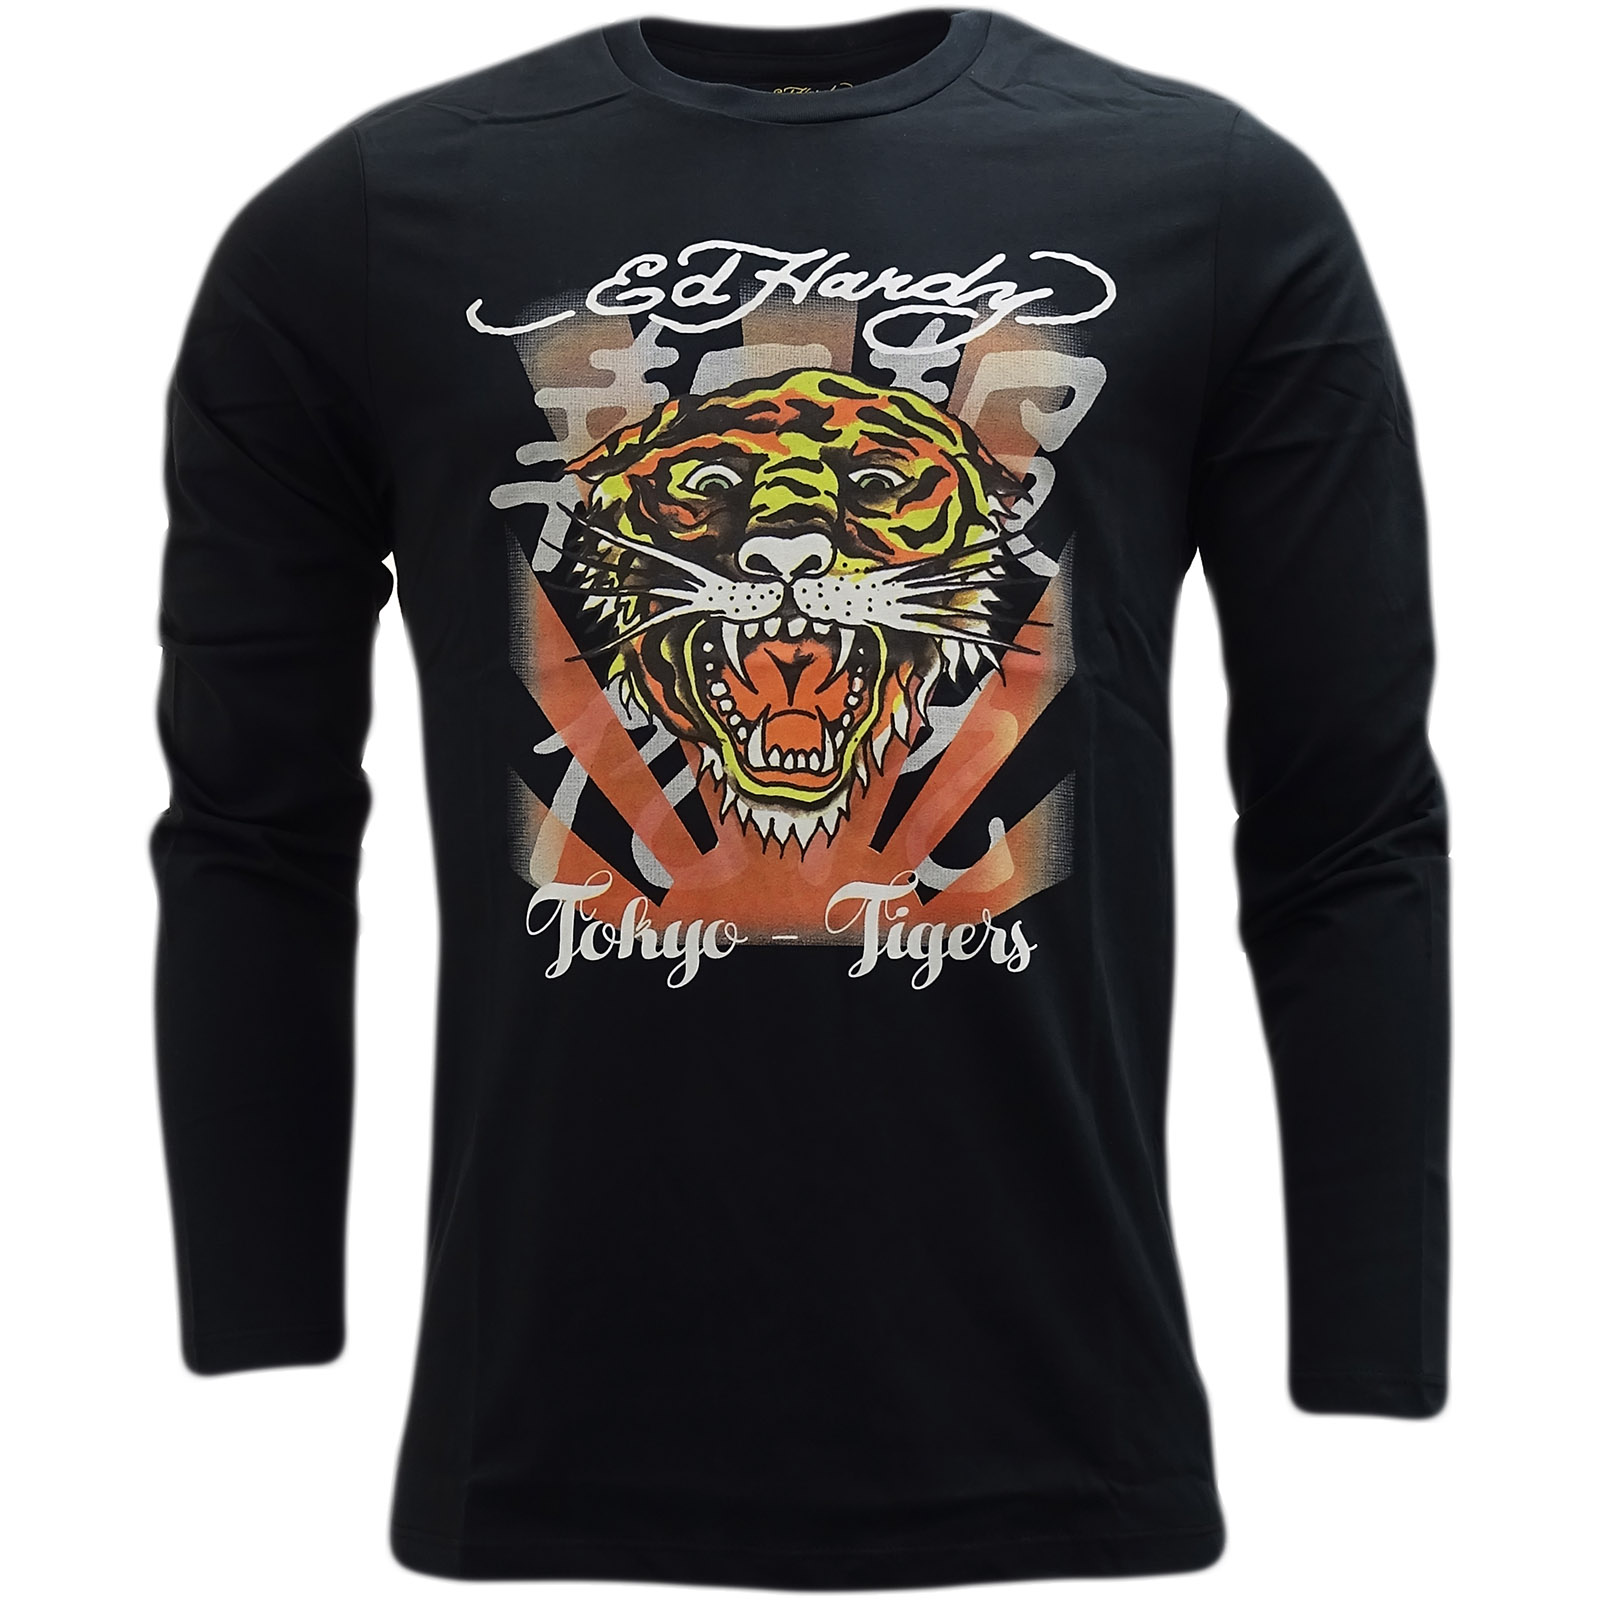 Design t shirt long sleeve - Ed Hardy Black Tiger Design Long Sleeve T Shirt Roar Japan